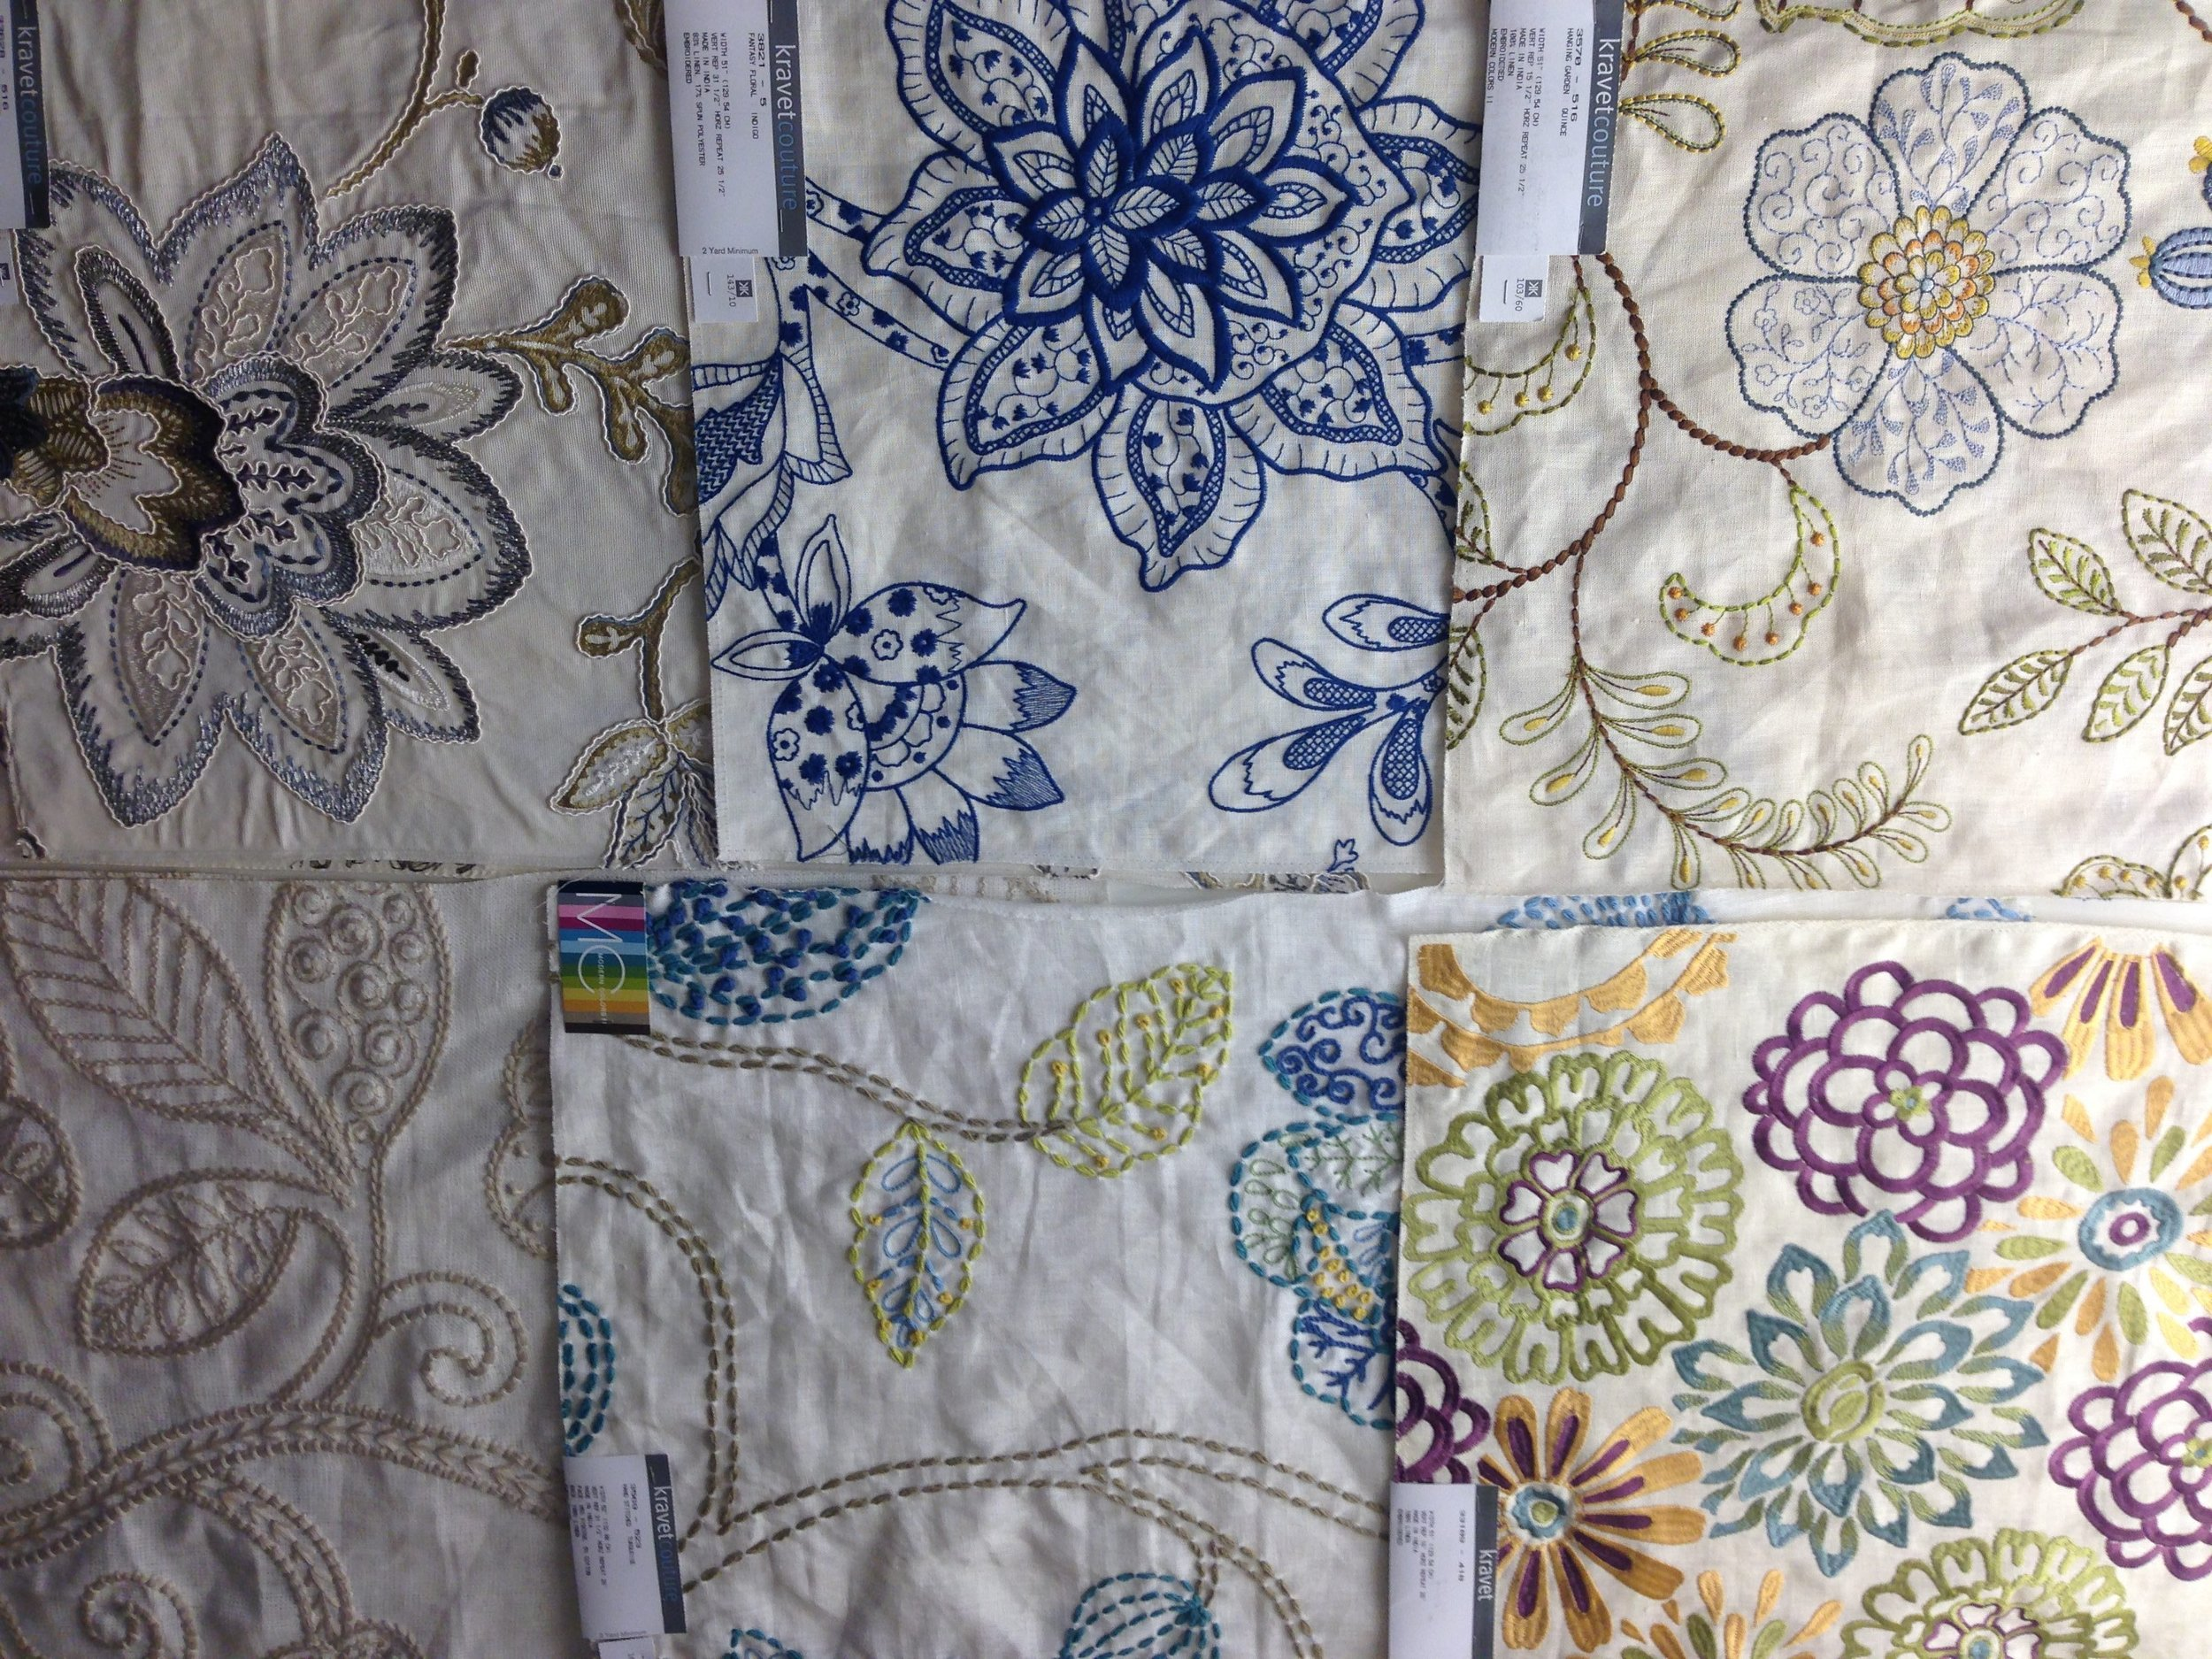 colorful embroidered linen